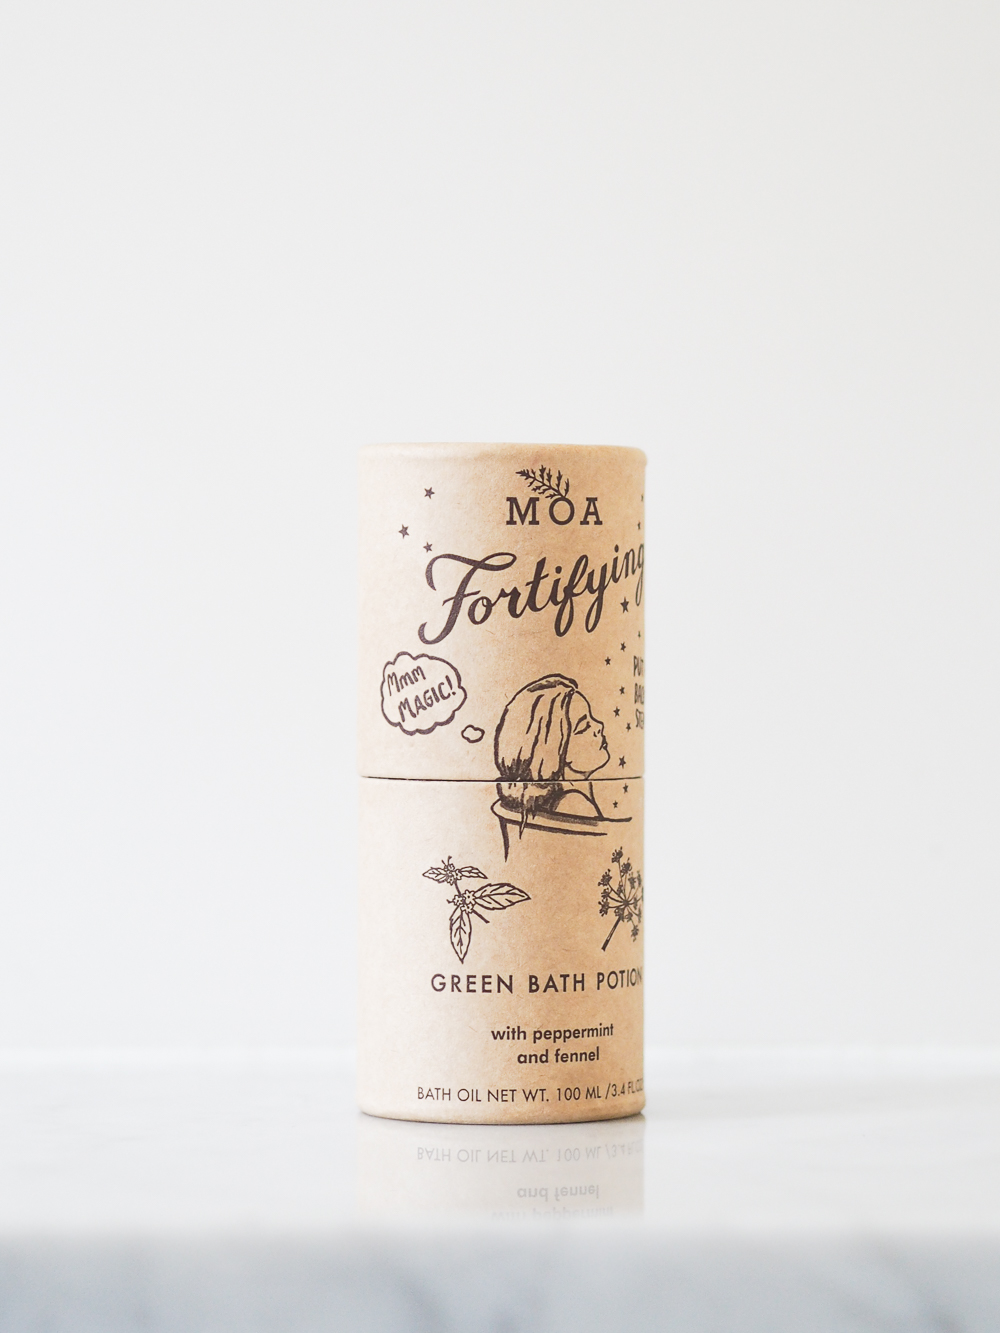 MOA Fortifying Green Bath Potion review | Design Hunter